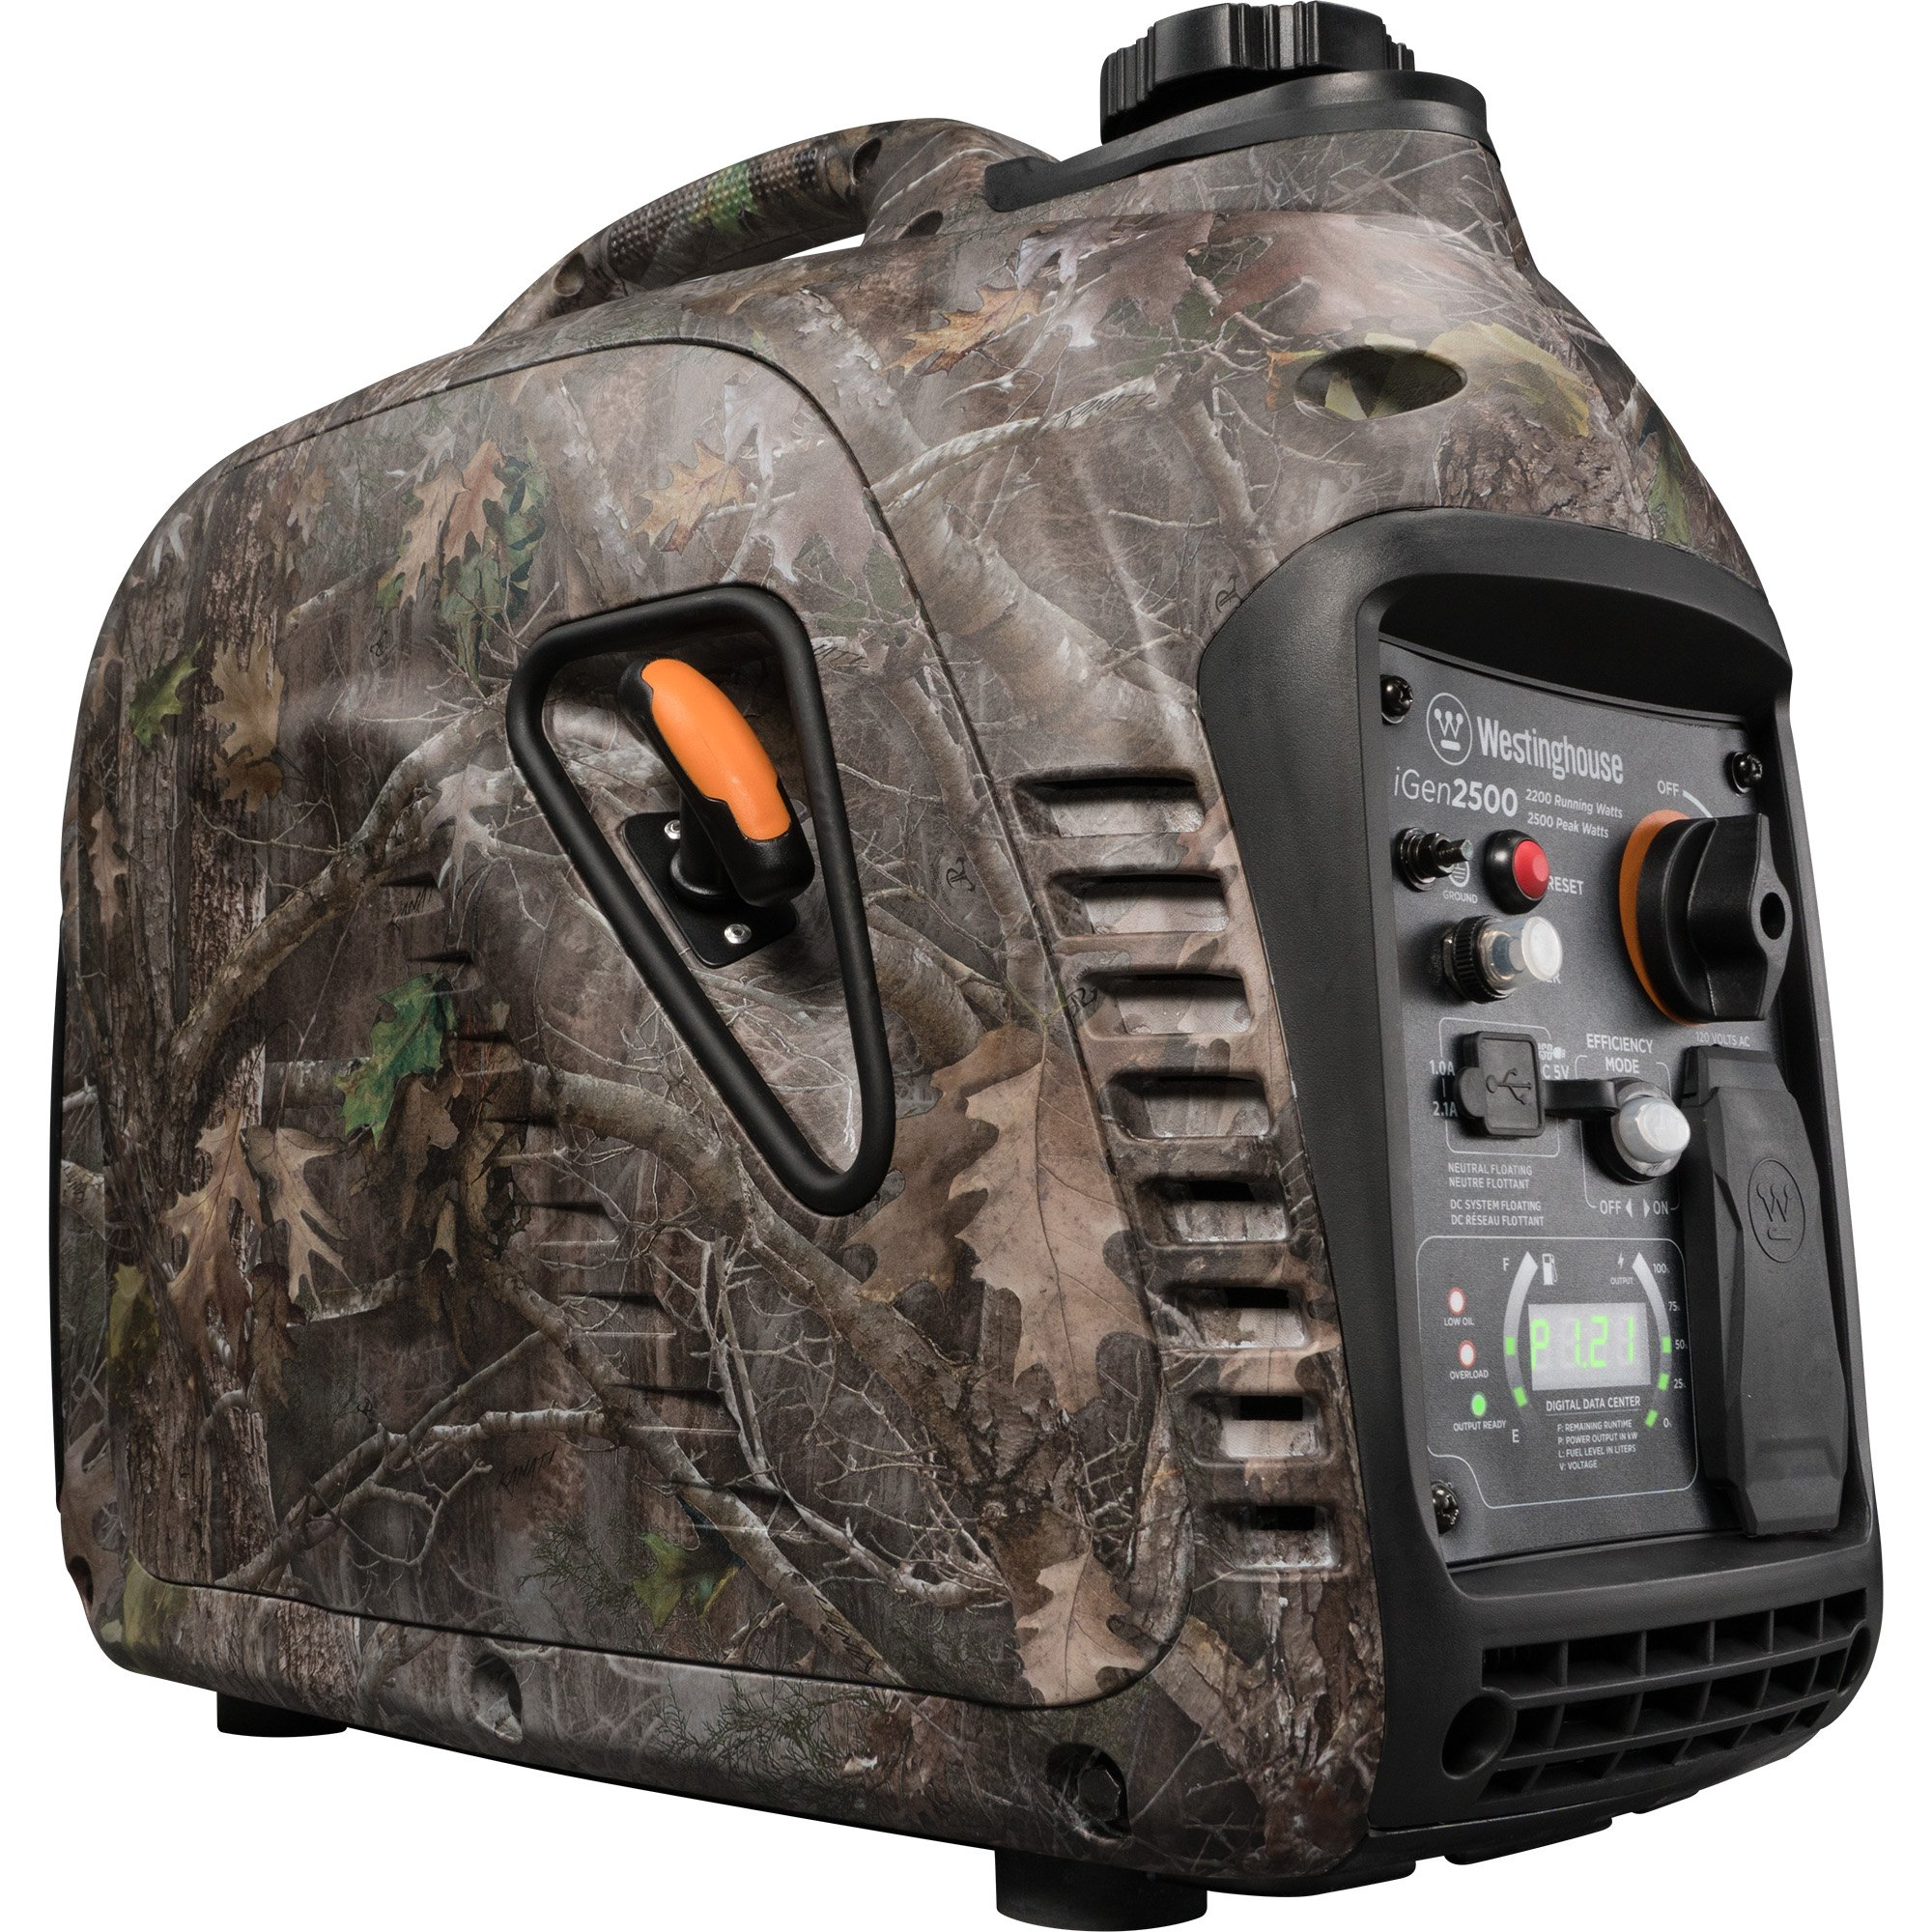 Westinghouse iGen2500 Super Quiet Portable Inverter Generator - TrueTimber Kanati Camouflage - 2200 Rated Watts and 2500 Peak Watts - Gas Powered - CARB Compliant by Westinghouse